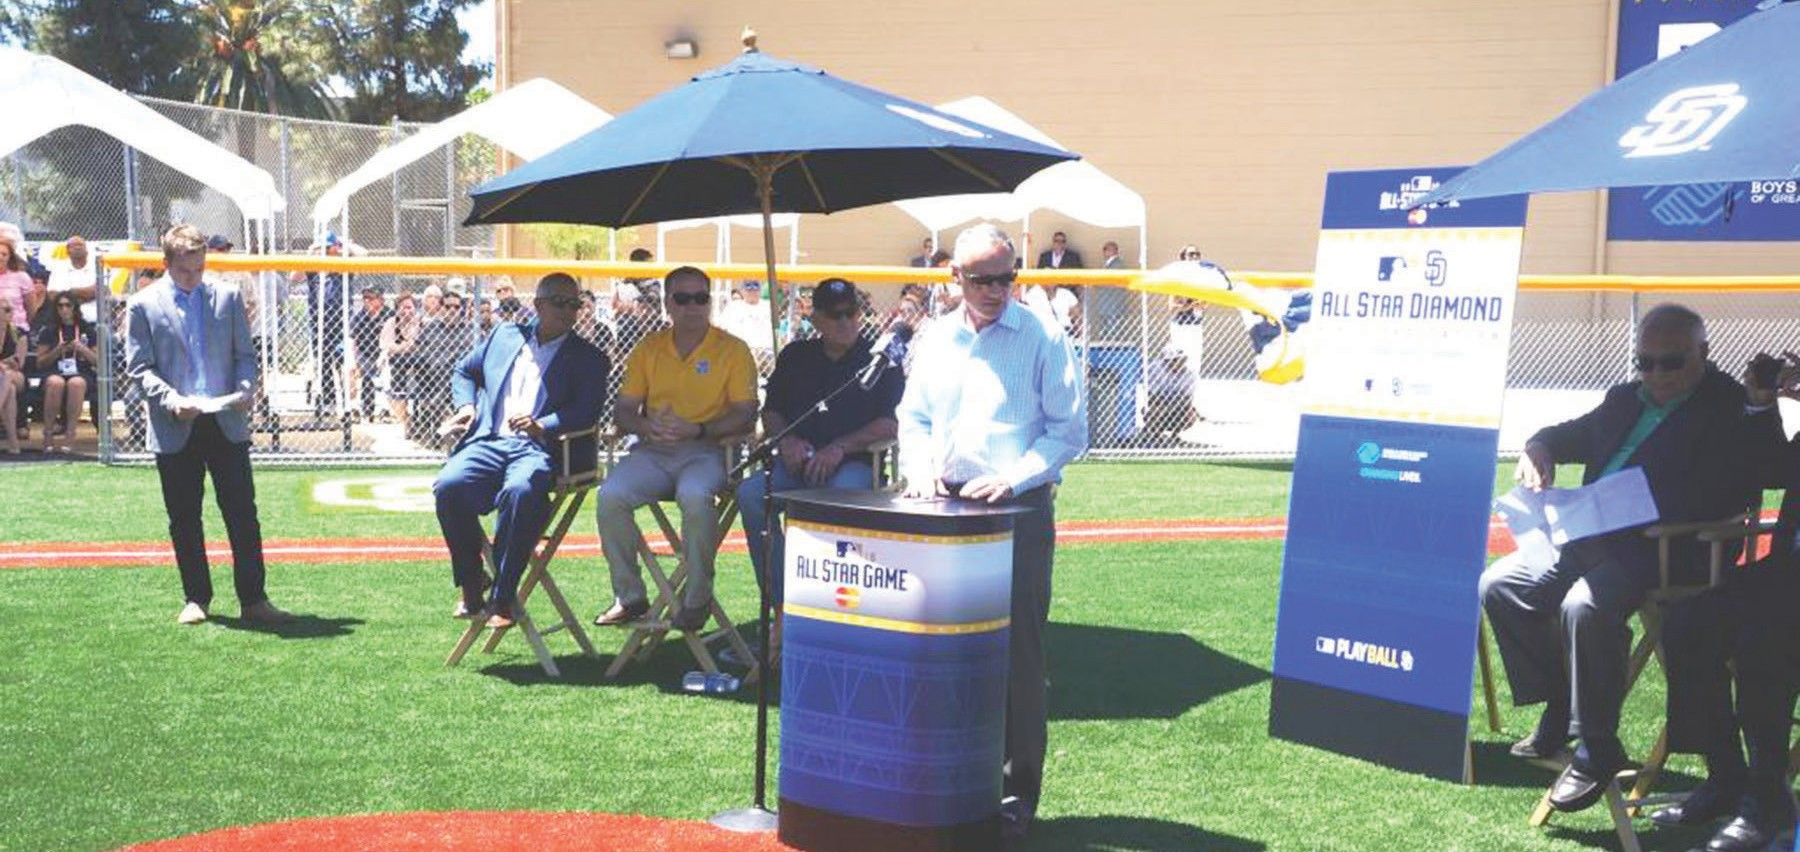 Commissioner of Baseball Rob Manfred led the dedication of the new diamond.